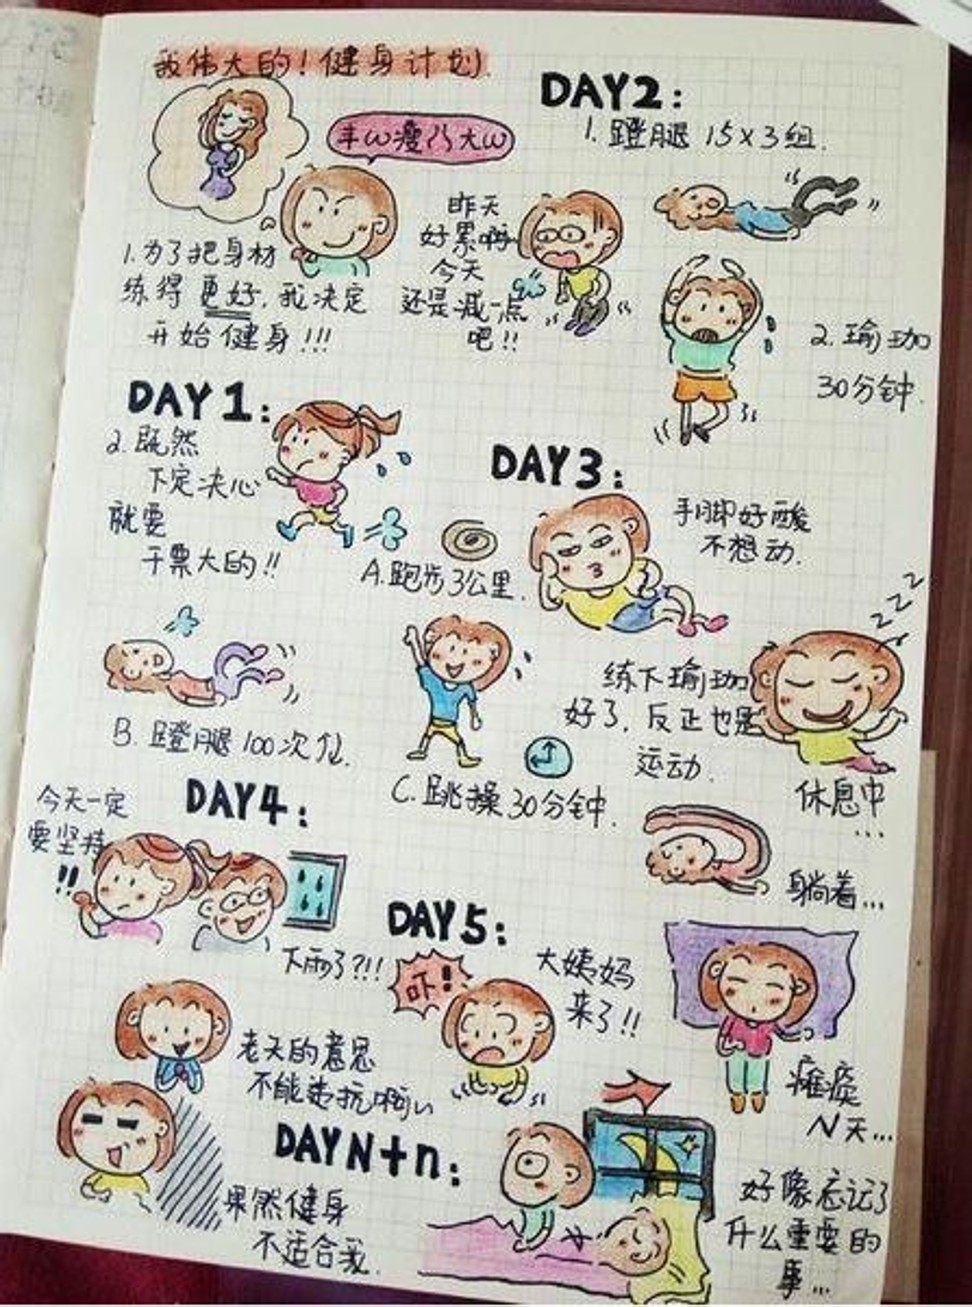 One of the cartoons shows Sun Ying's exercise regime. Photo: Weibo